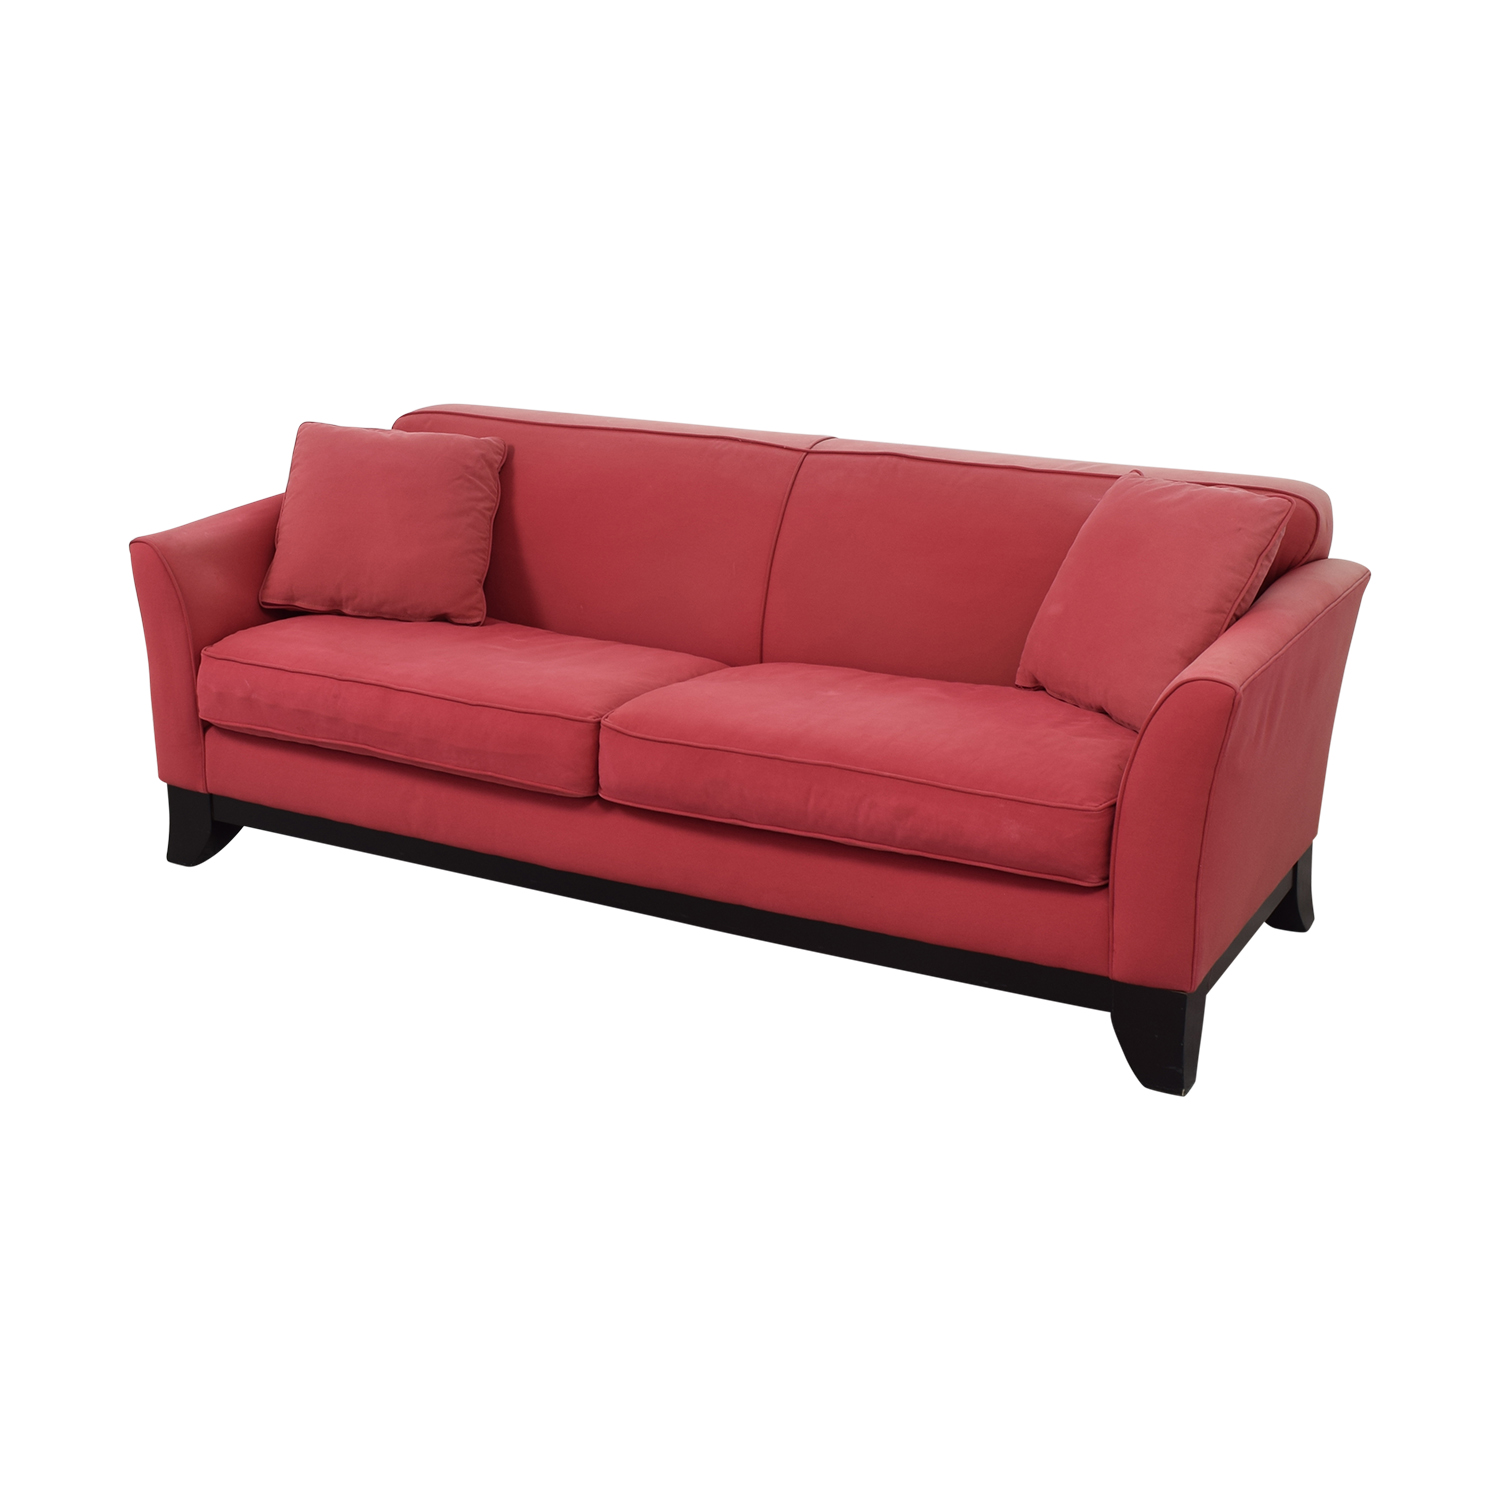 Pottery Barn Cardinal Red Two-Cushion Sofa / Sofas